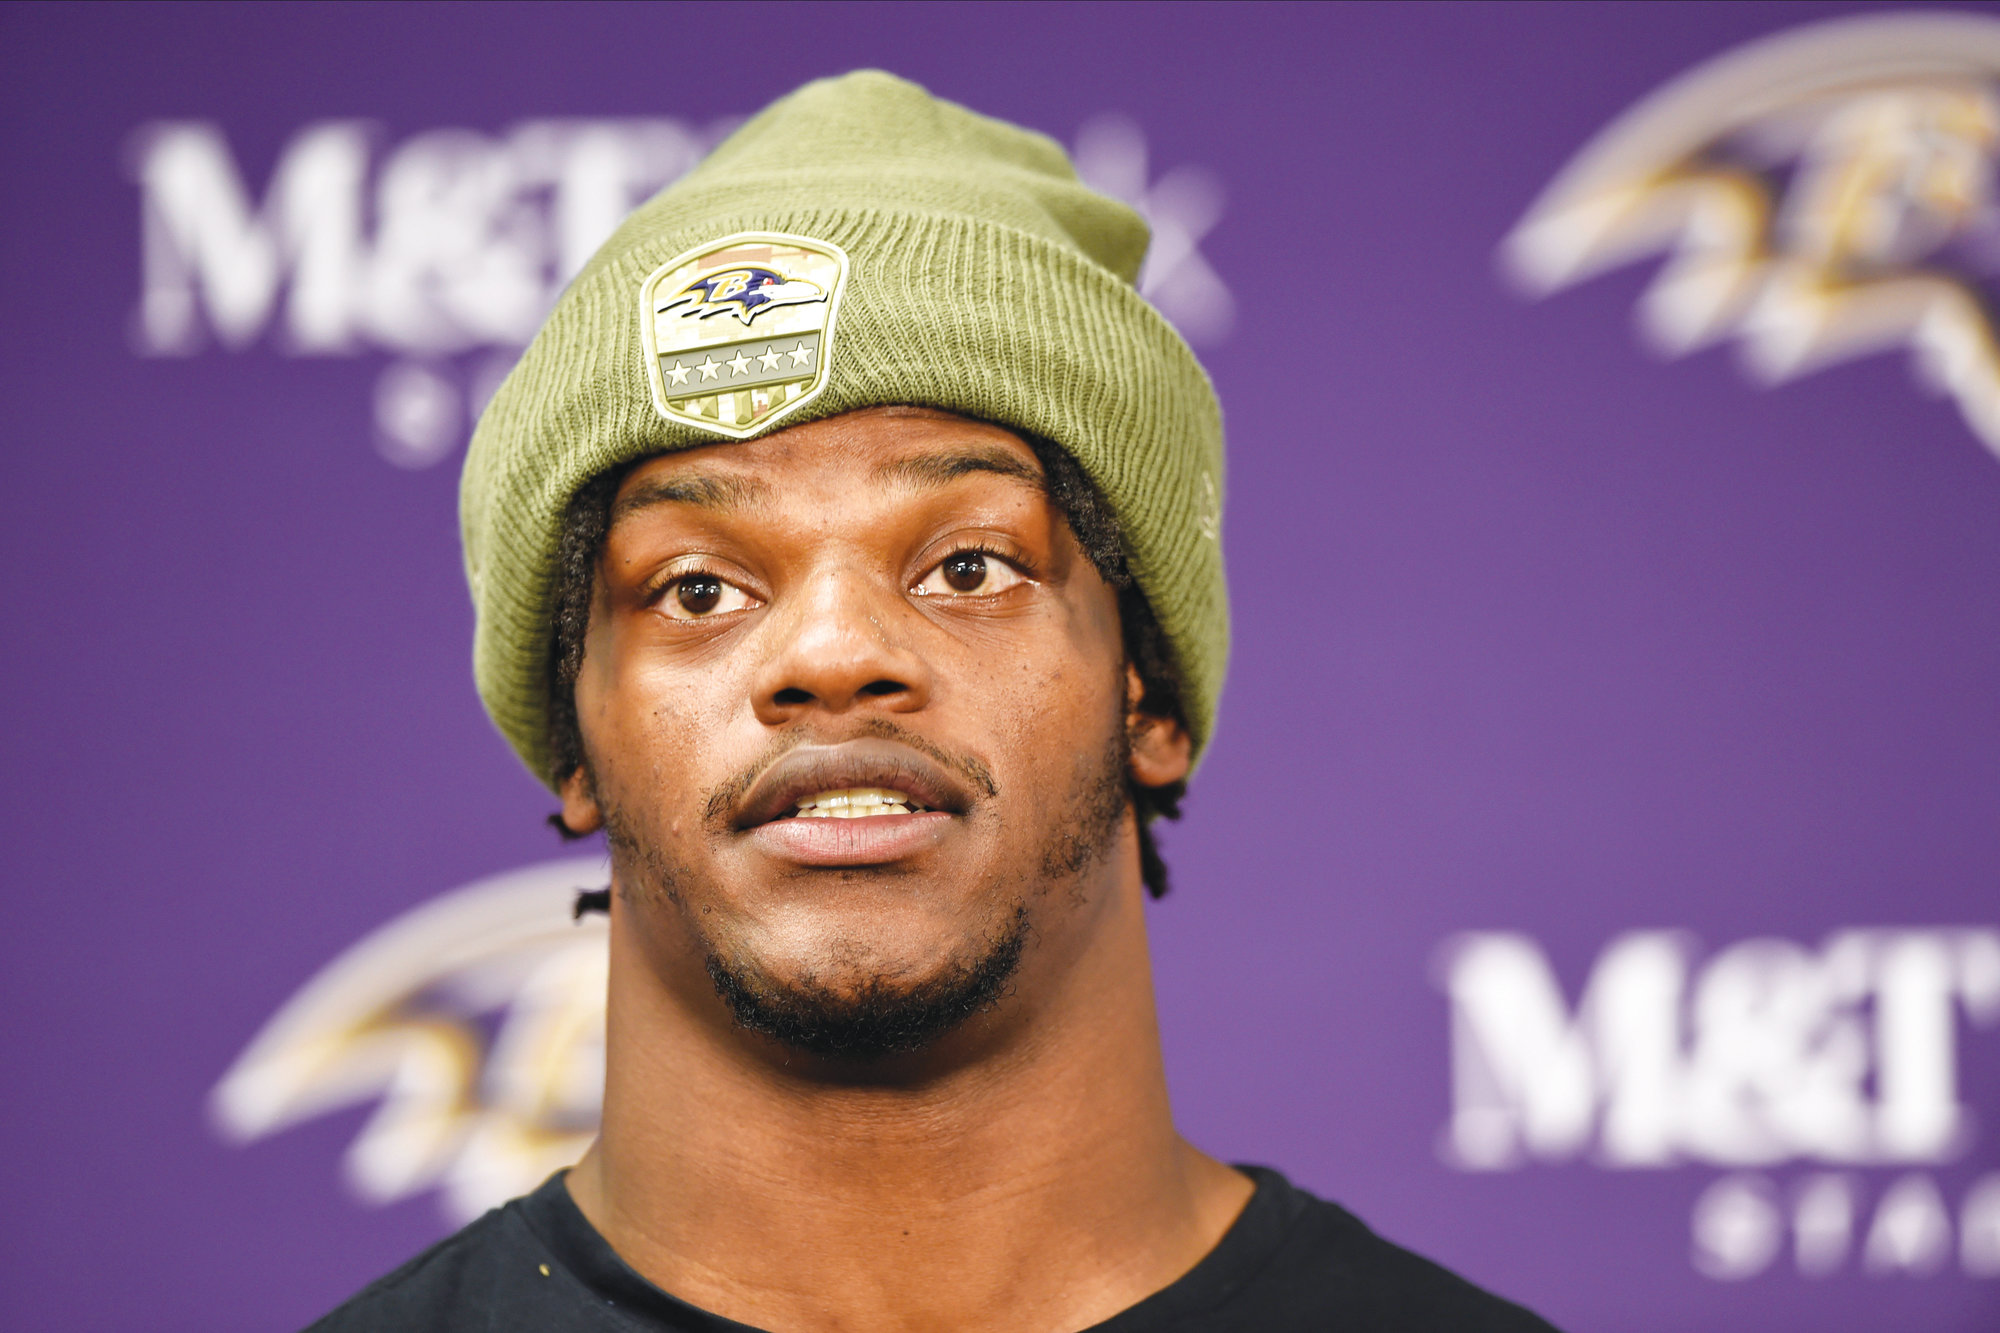 Baltimore Ravens quarterback Lamar Jackson talks to reporters after an NFL football game against the Houston Texans, Sunday, Nov. 17, 2019, in Baltimore. The Ravens won 41-7.